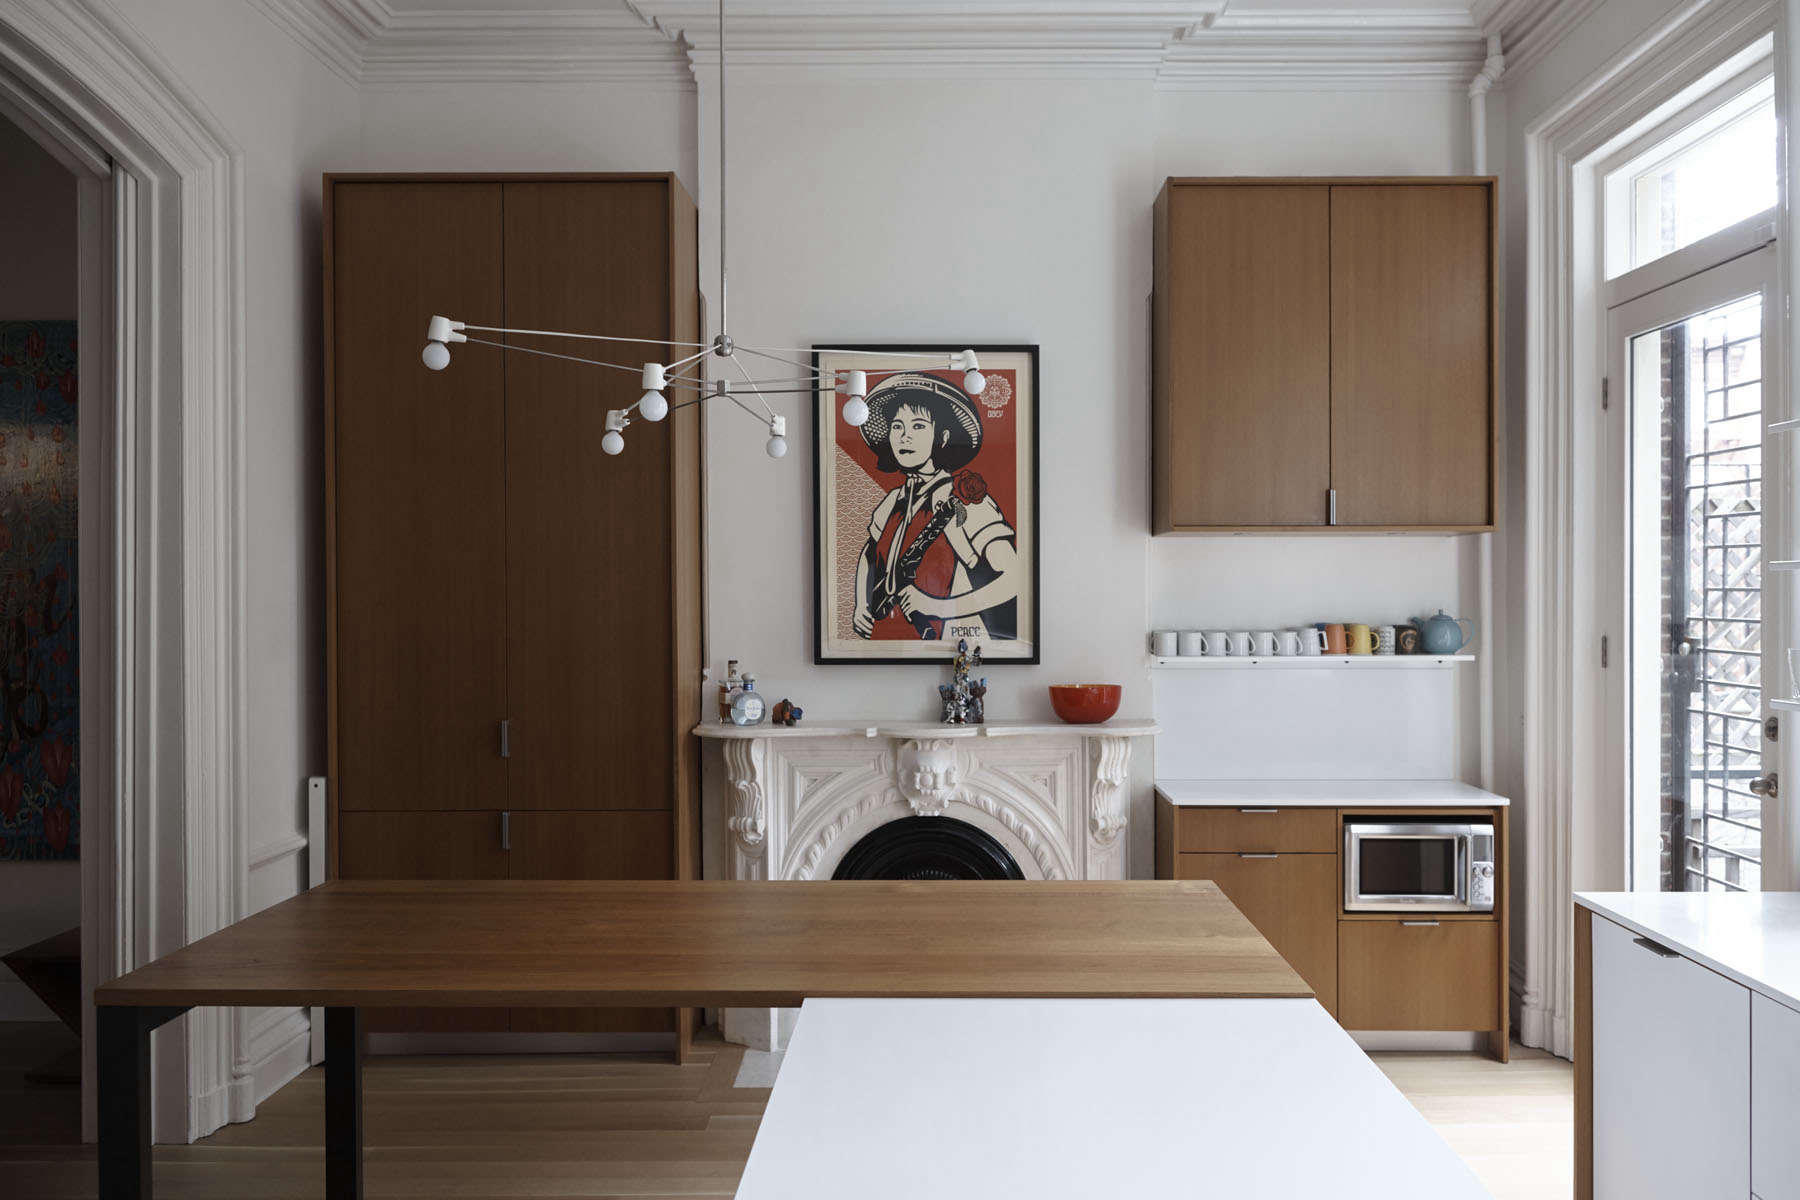 &#8\2\20;we wanted the kitchen to be 'inserted' into the shell of the 9